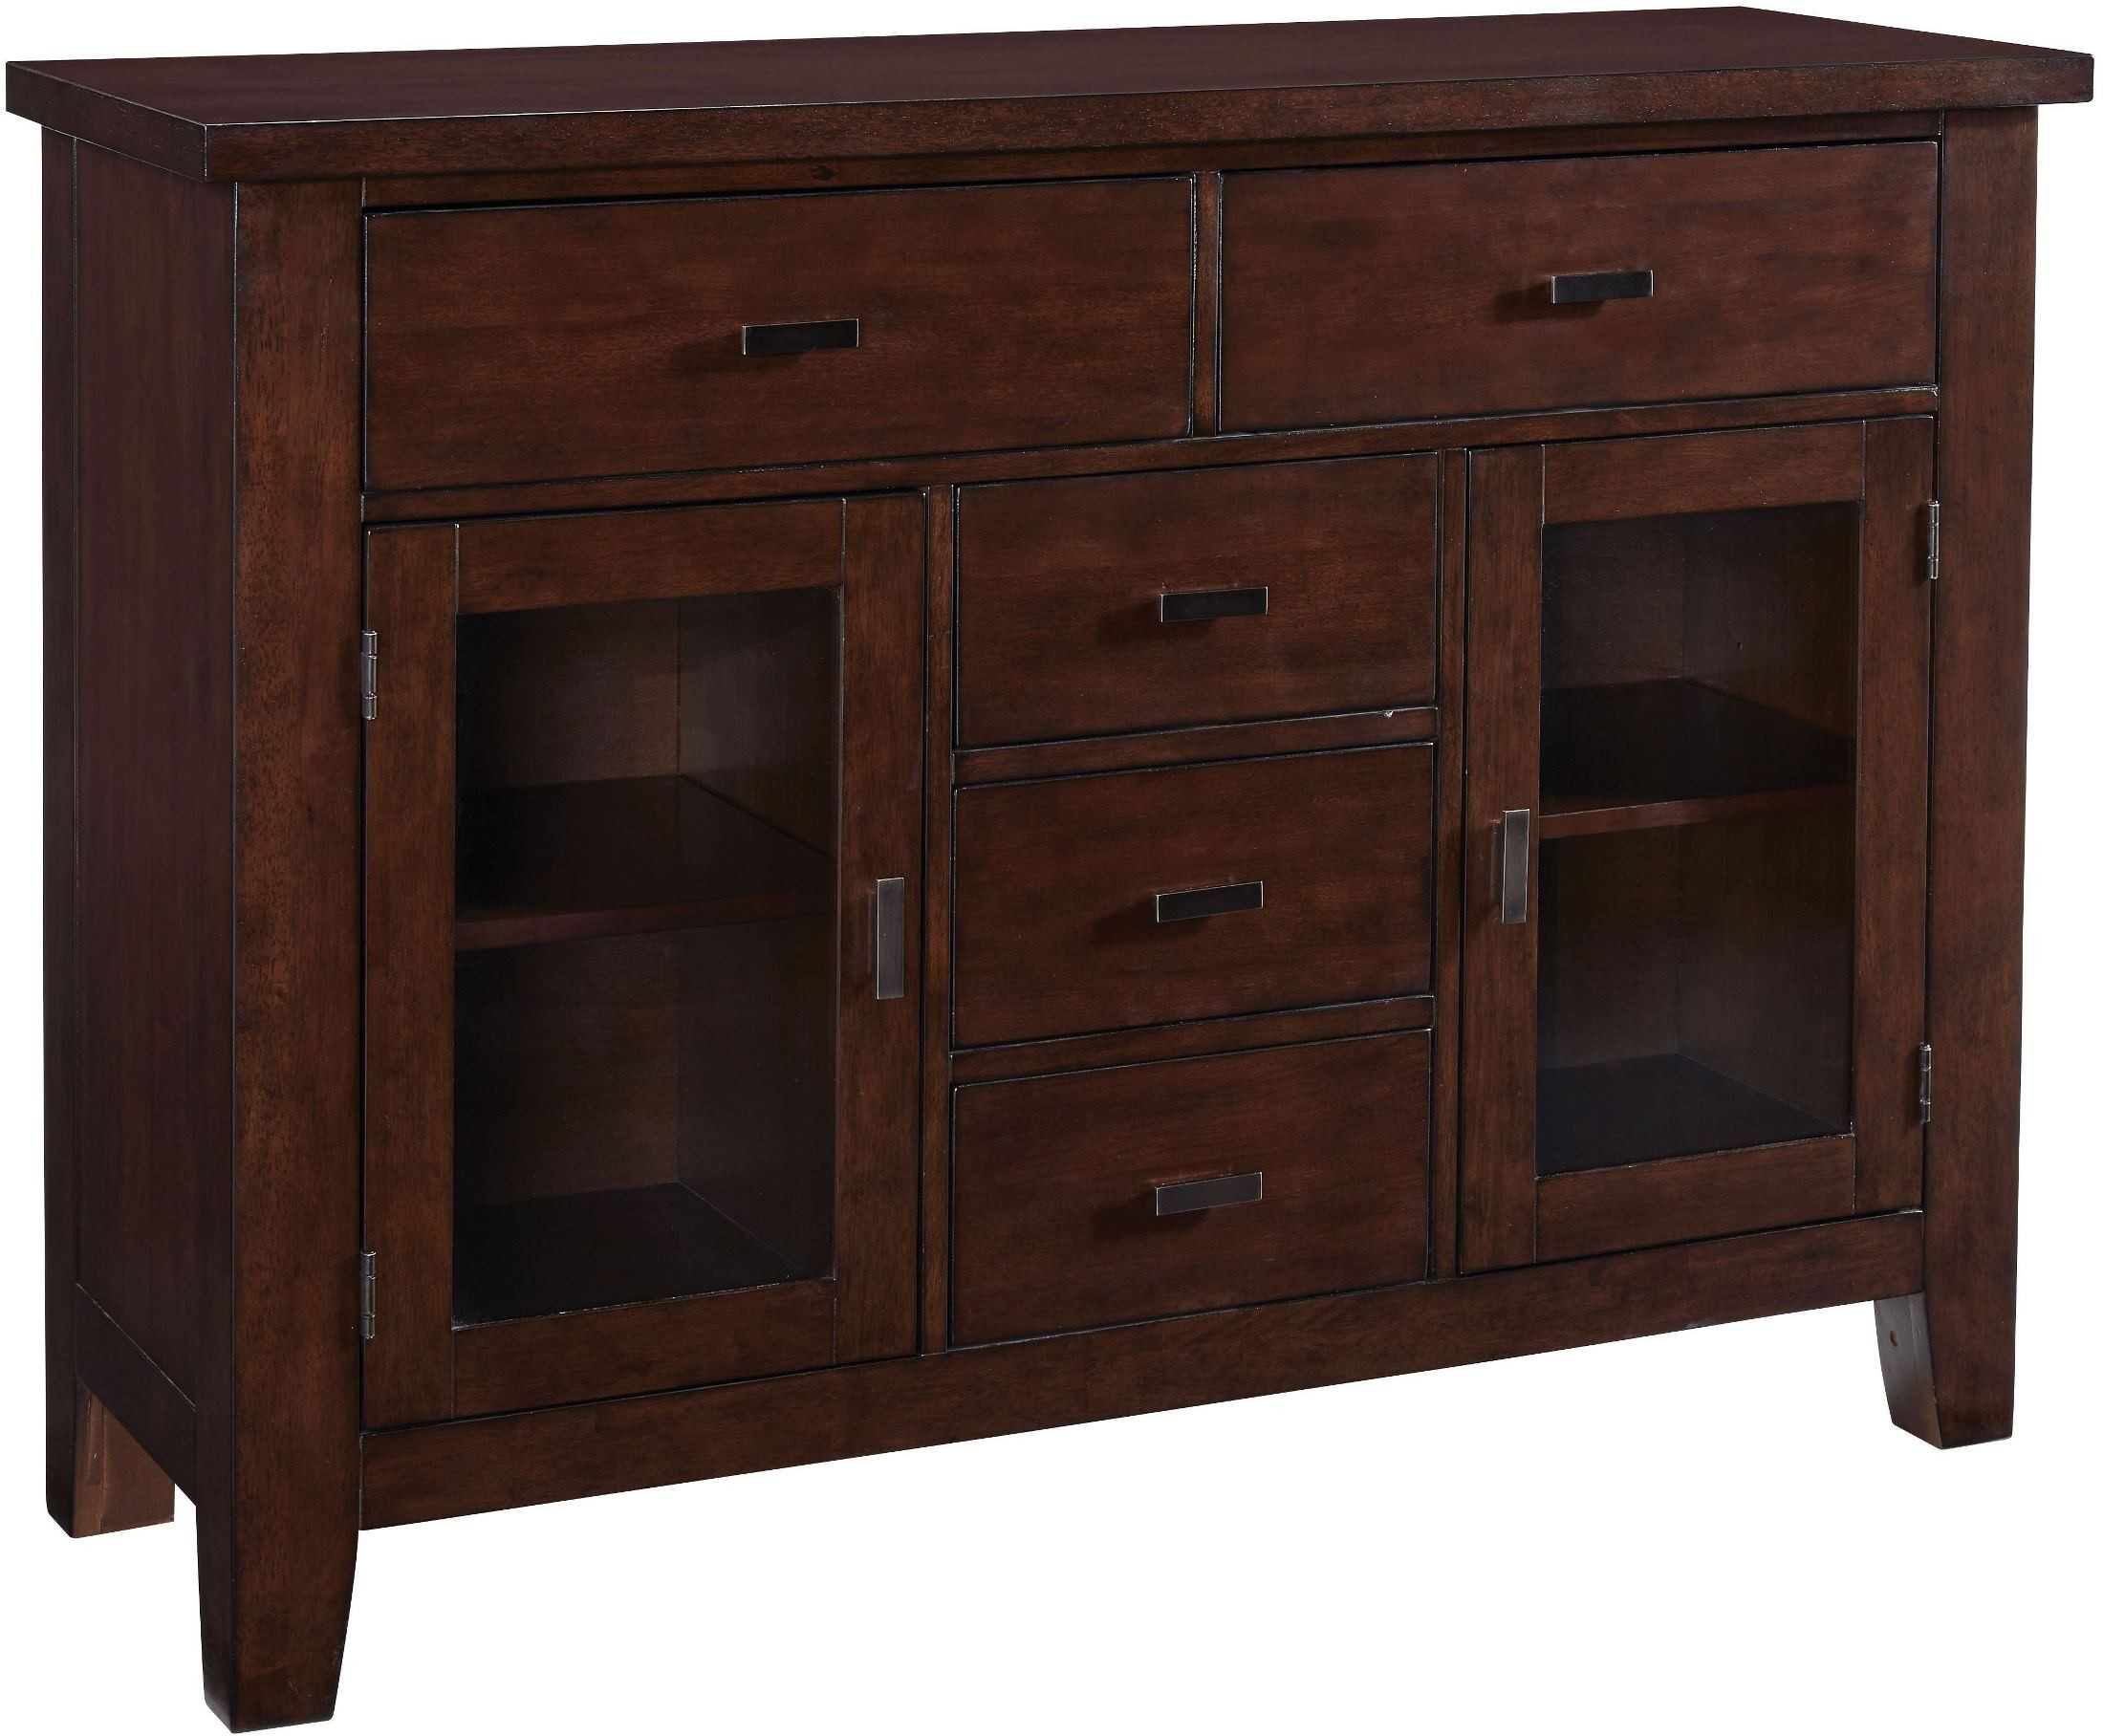 Barclay Burnished Dark Brown Sideboard From Standard Furniture Coleman Furniture